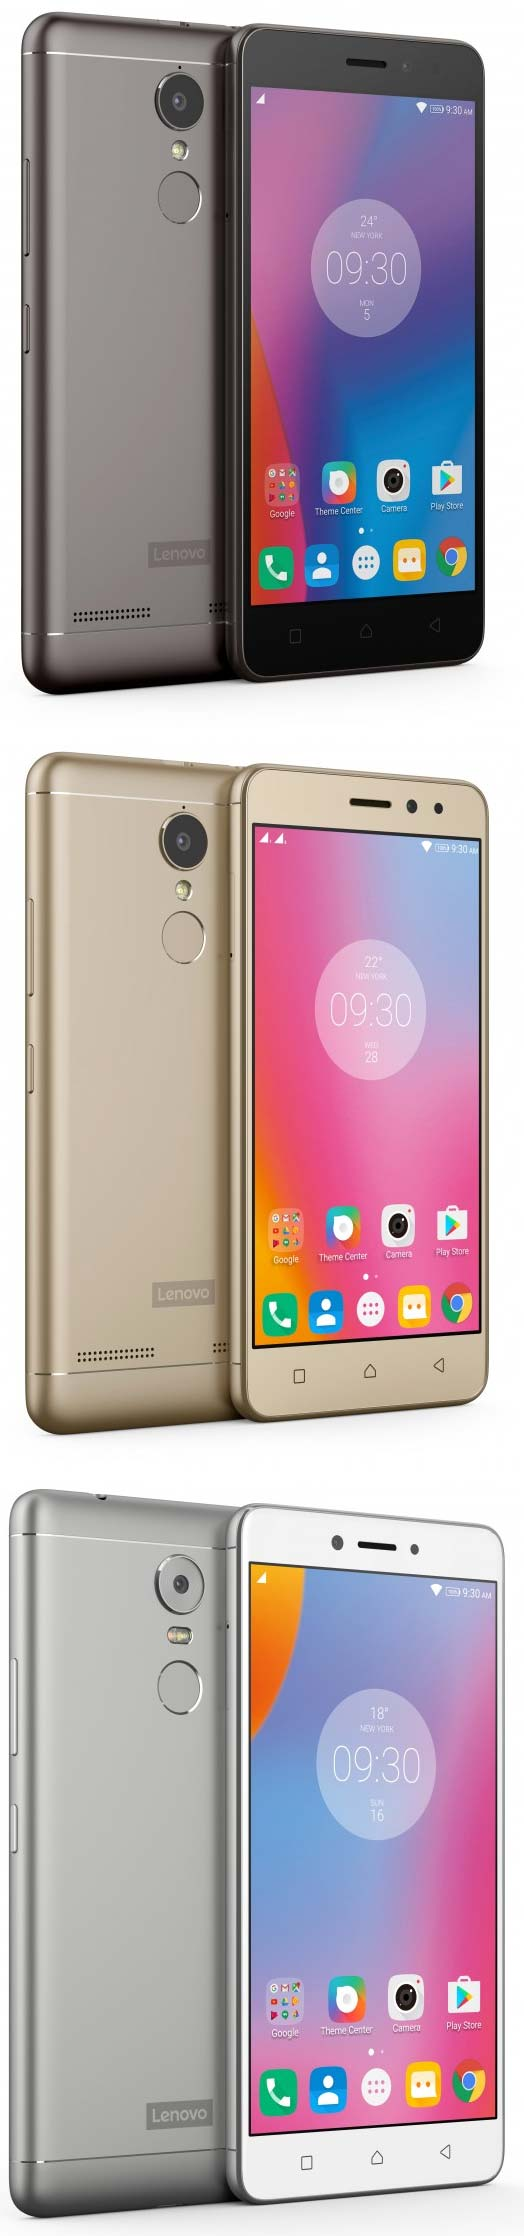 Lenovo K6, K6 Power и K6 Note